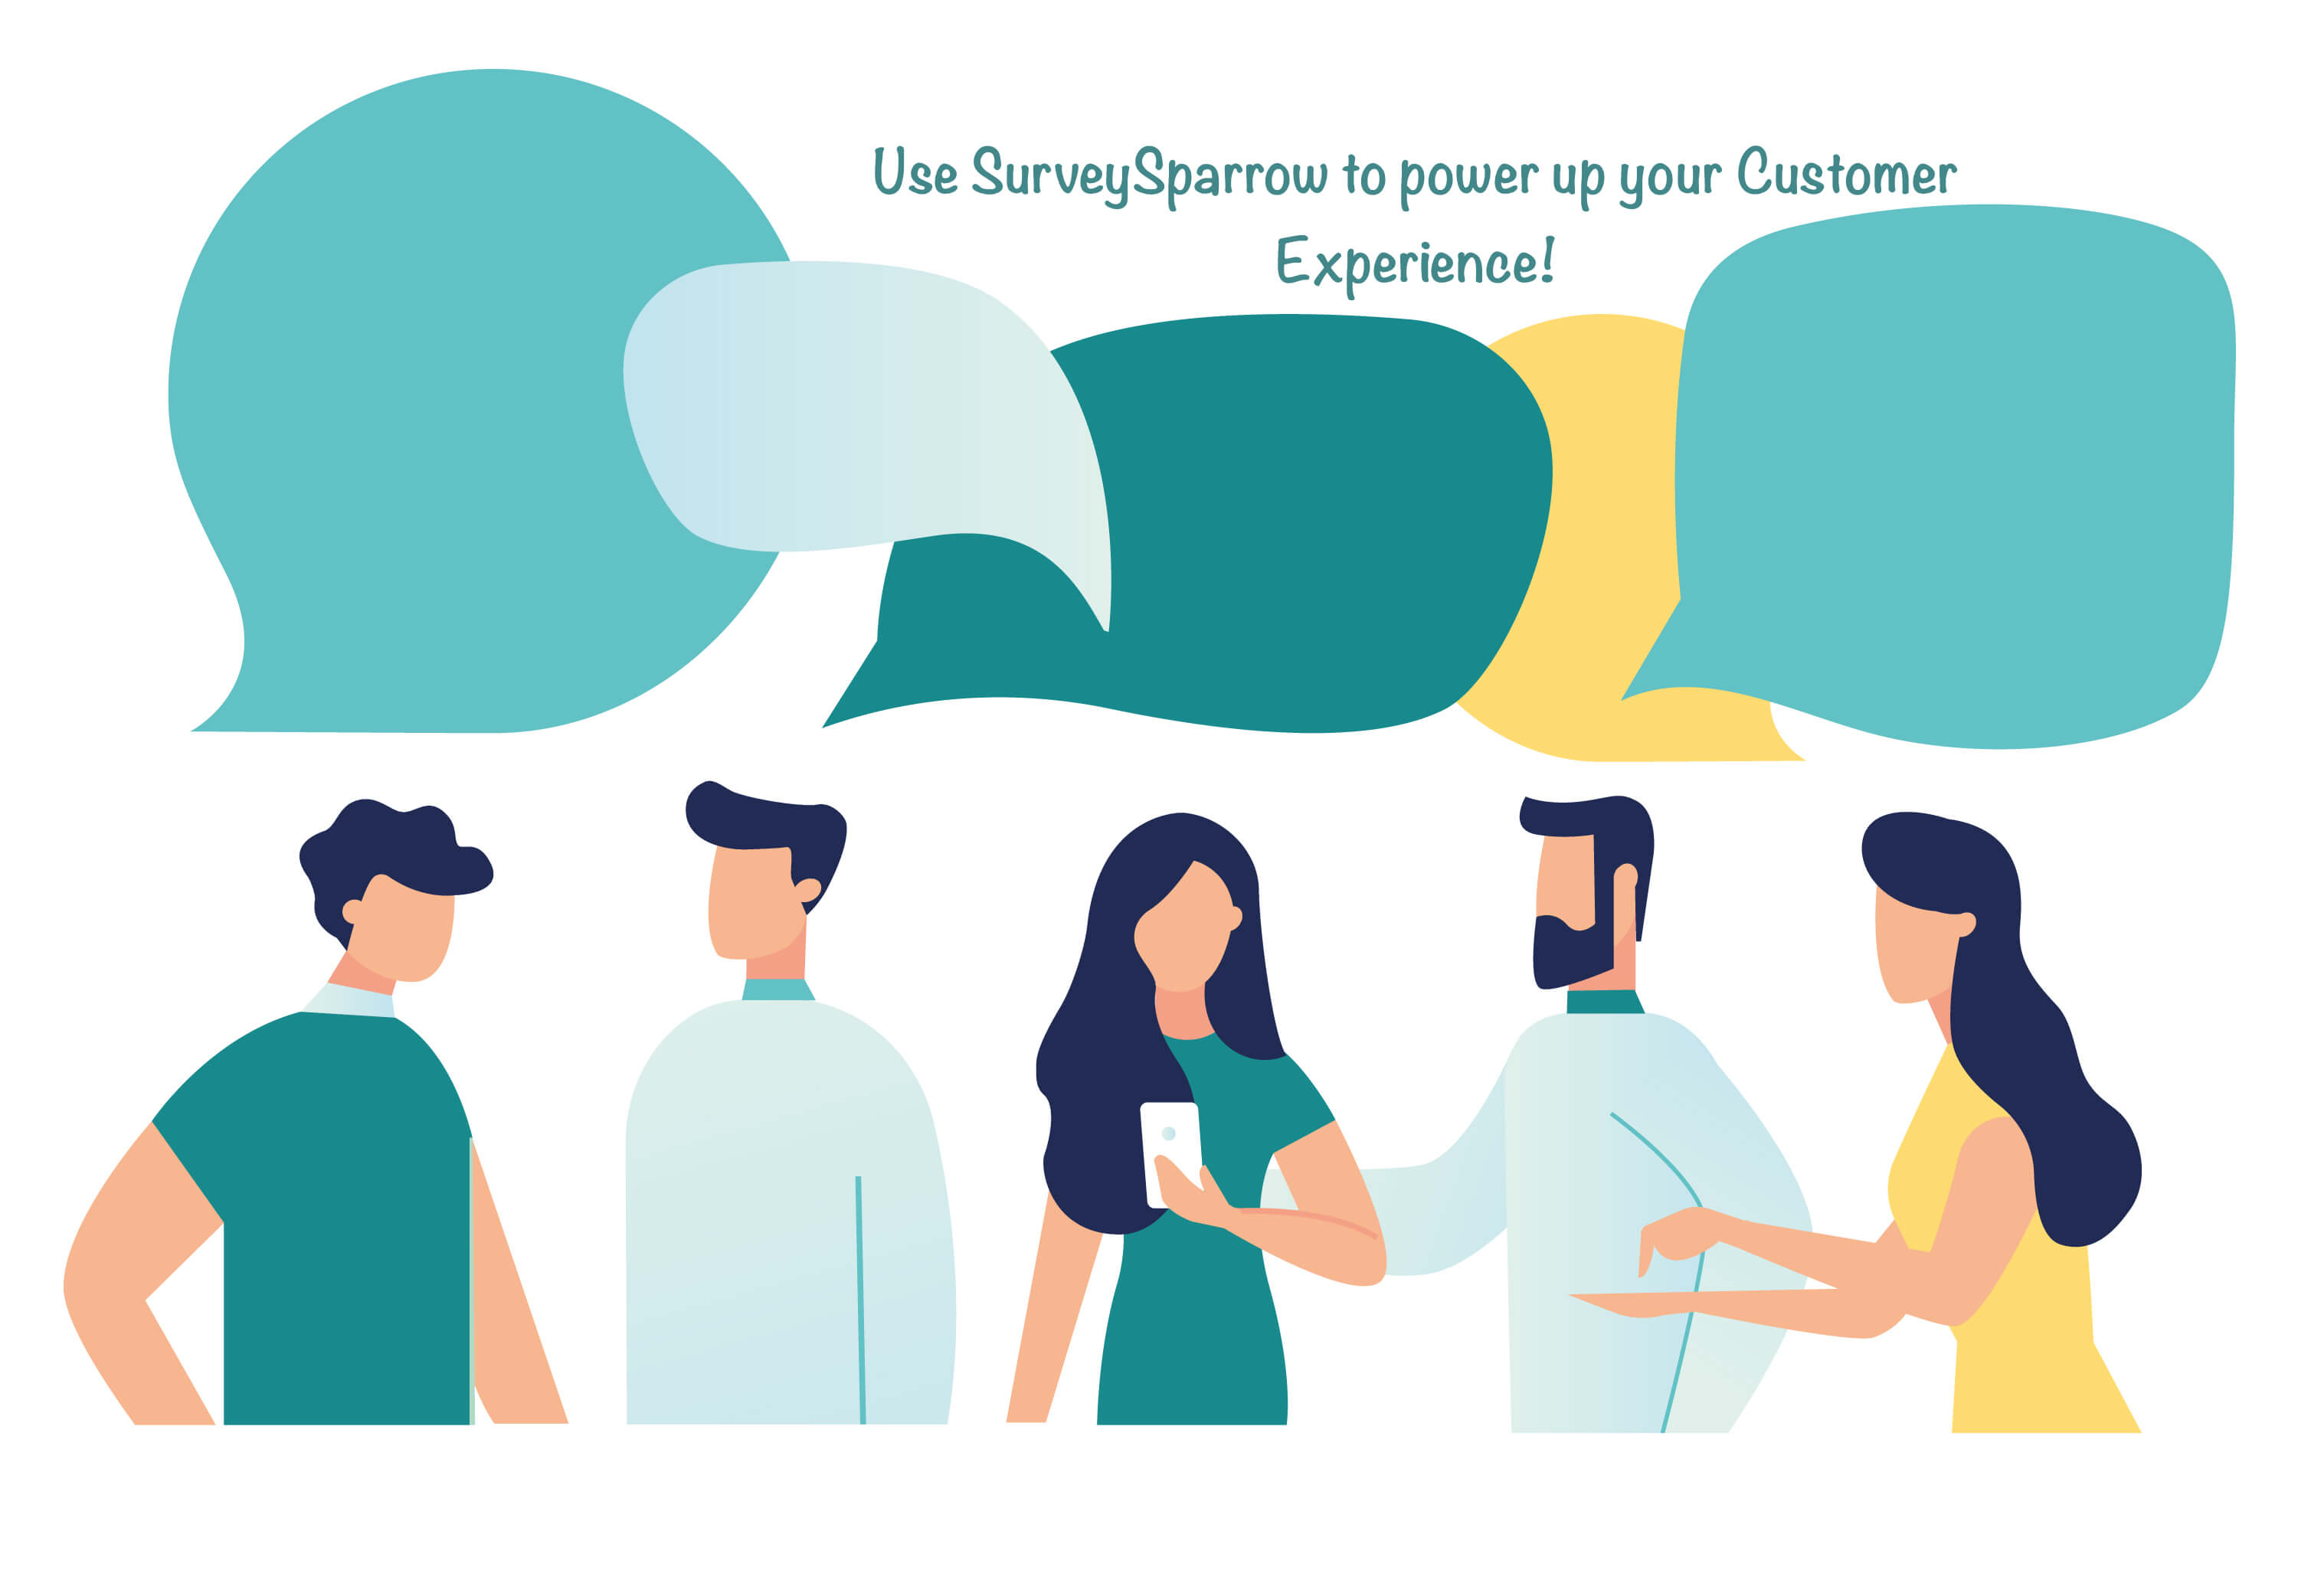 With SurveySparrow interactive user interface, companies can achieve 40% more responses than normal feedback collection methodologies.